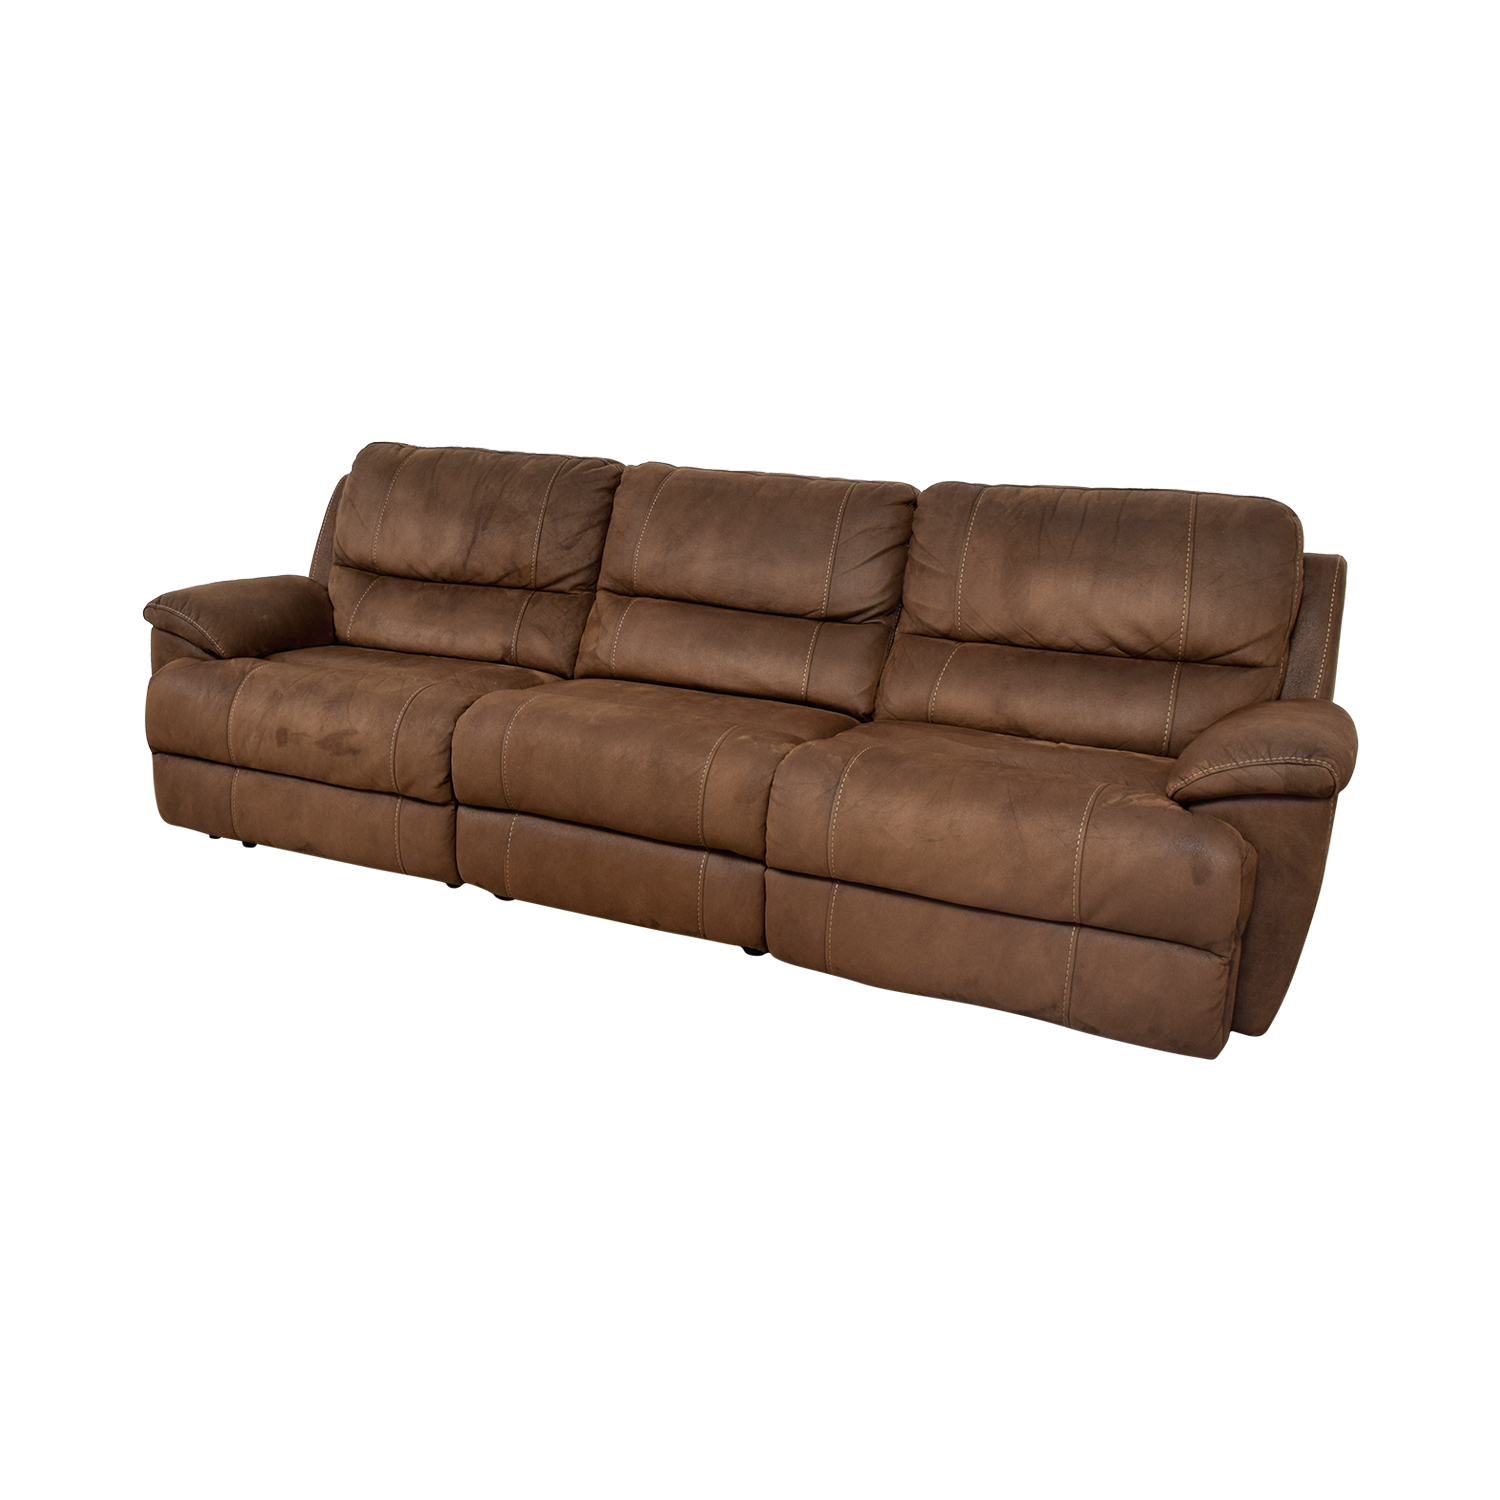 88% OFF - Haverty's Haverty's Reclining Sofa / Sofas